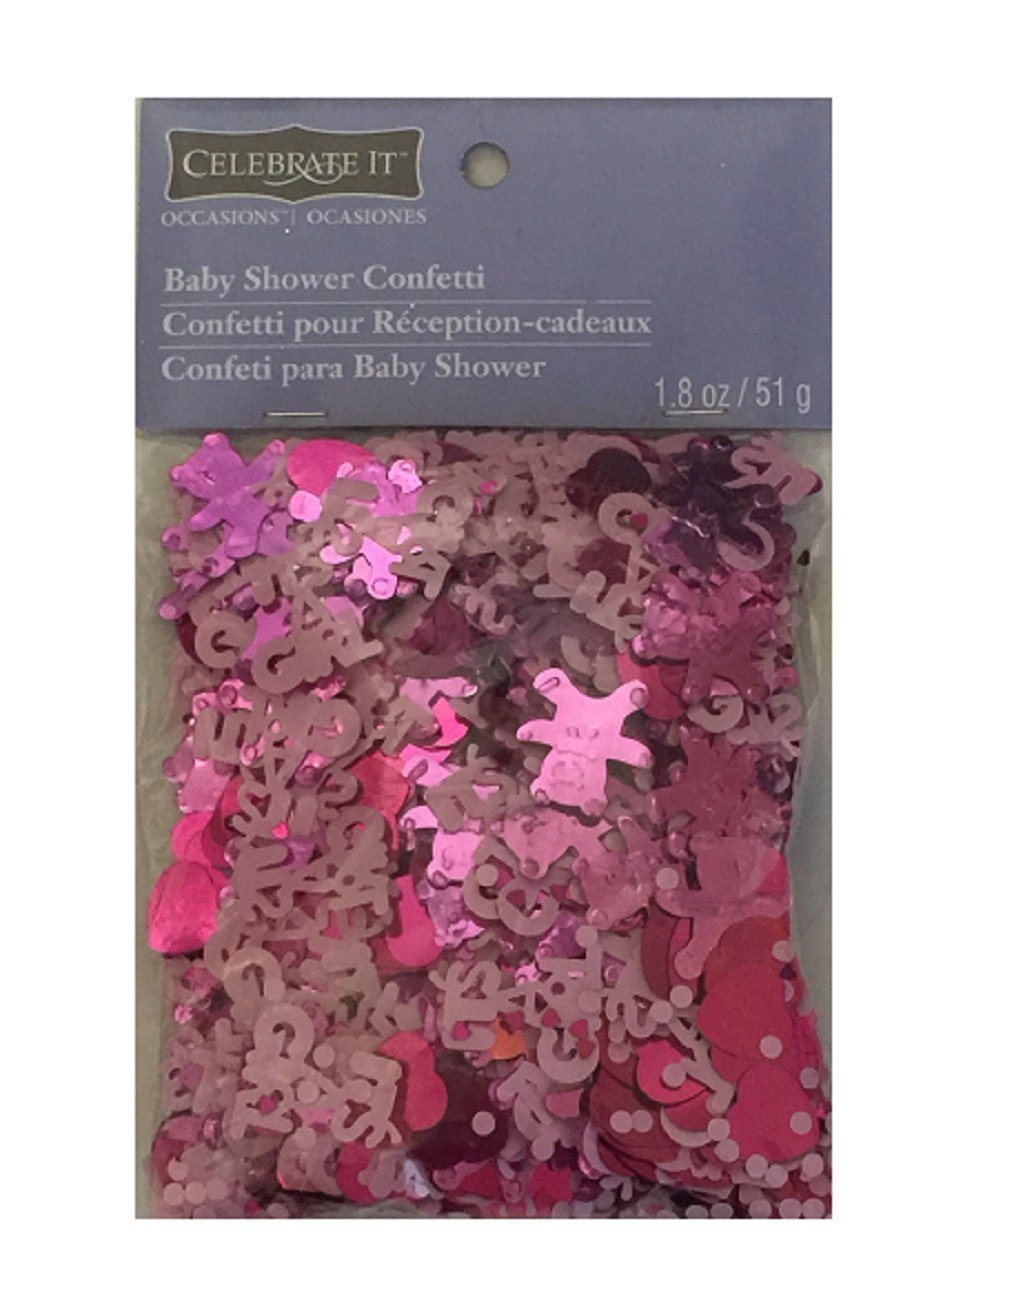 Pink Baby Shower Confetti - It's a Girl with Hearts & Teddy Bears